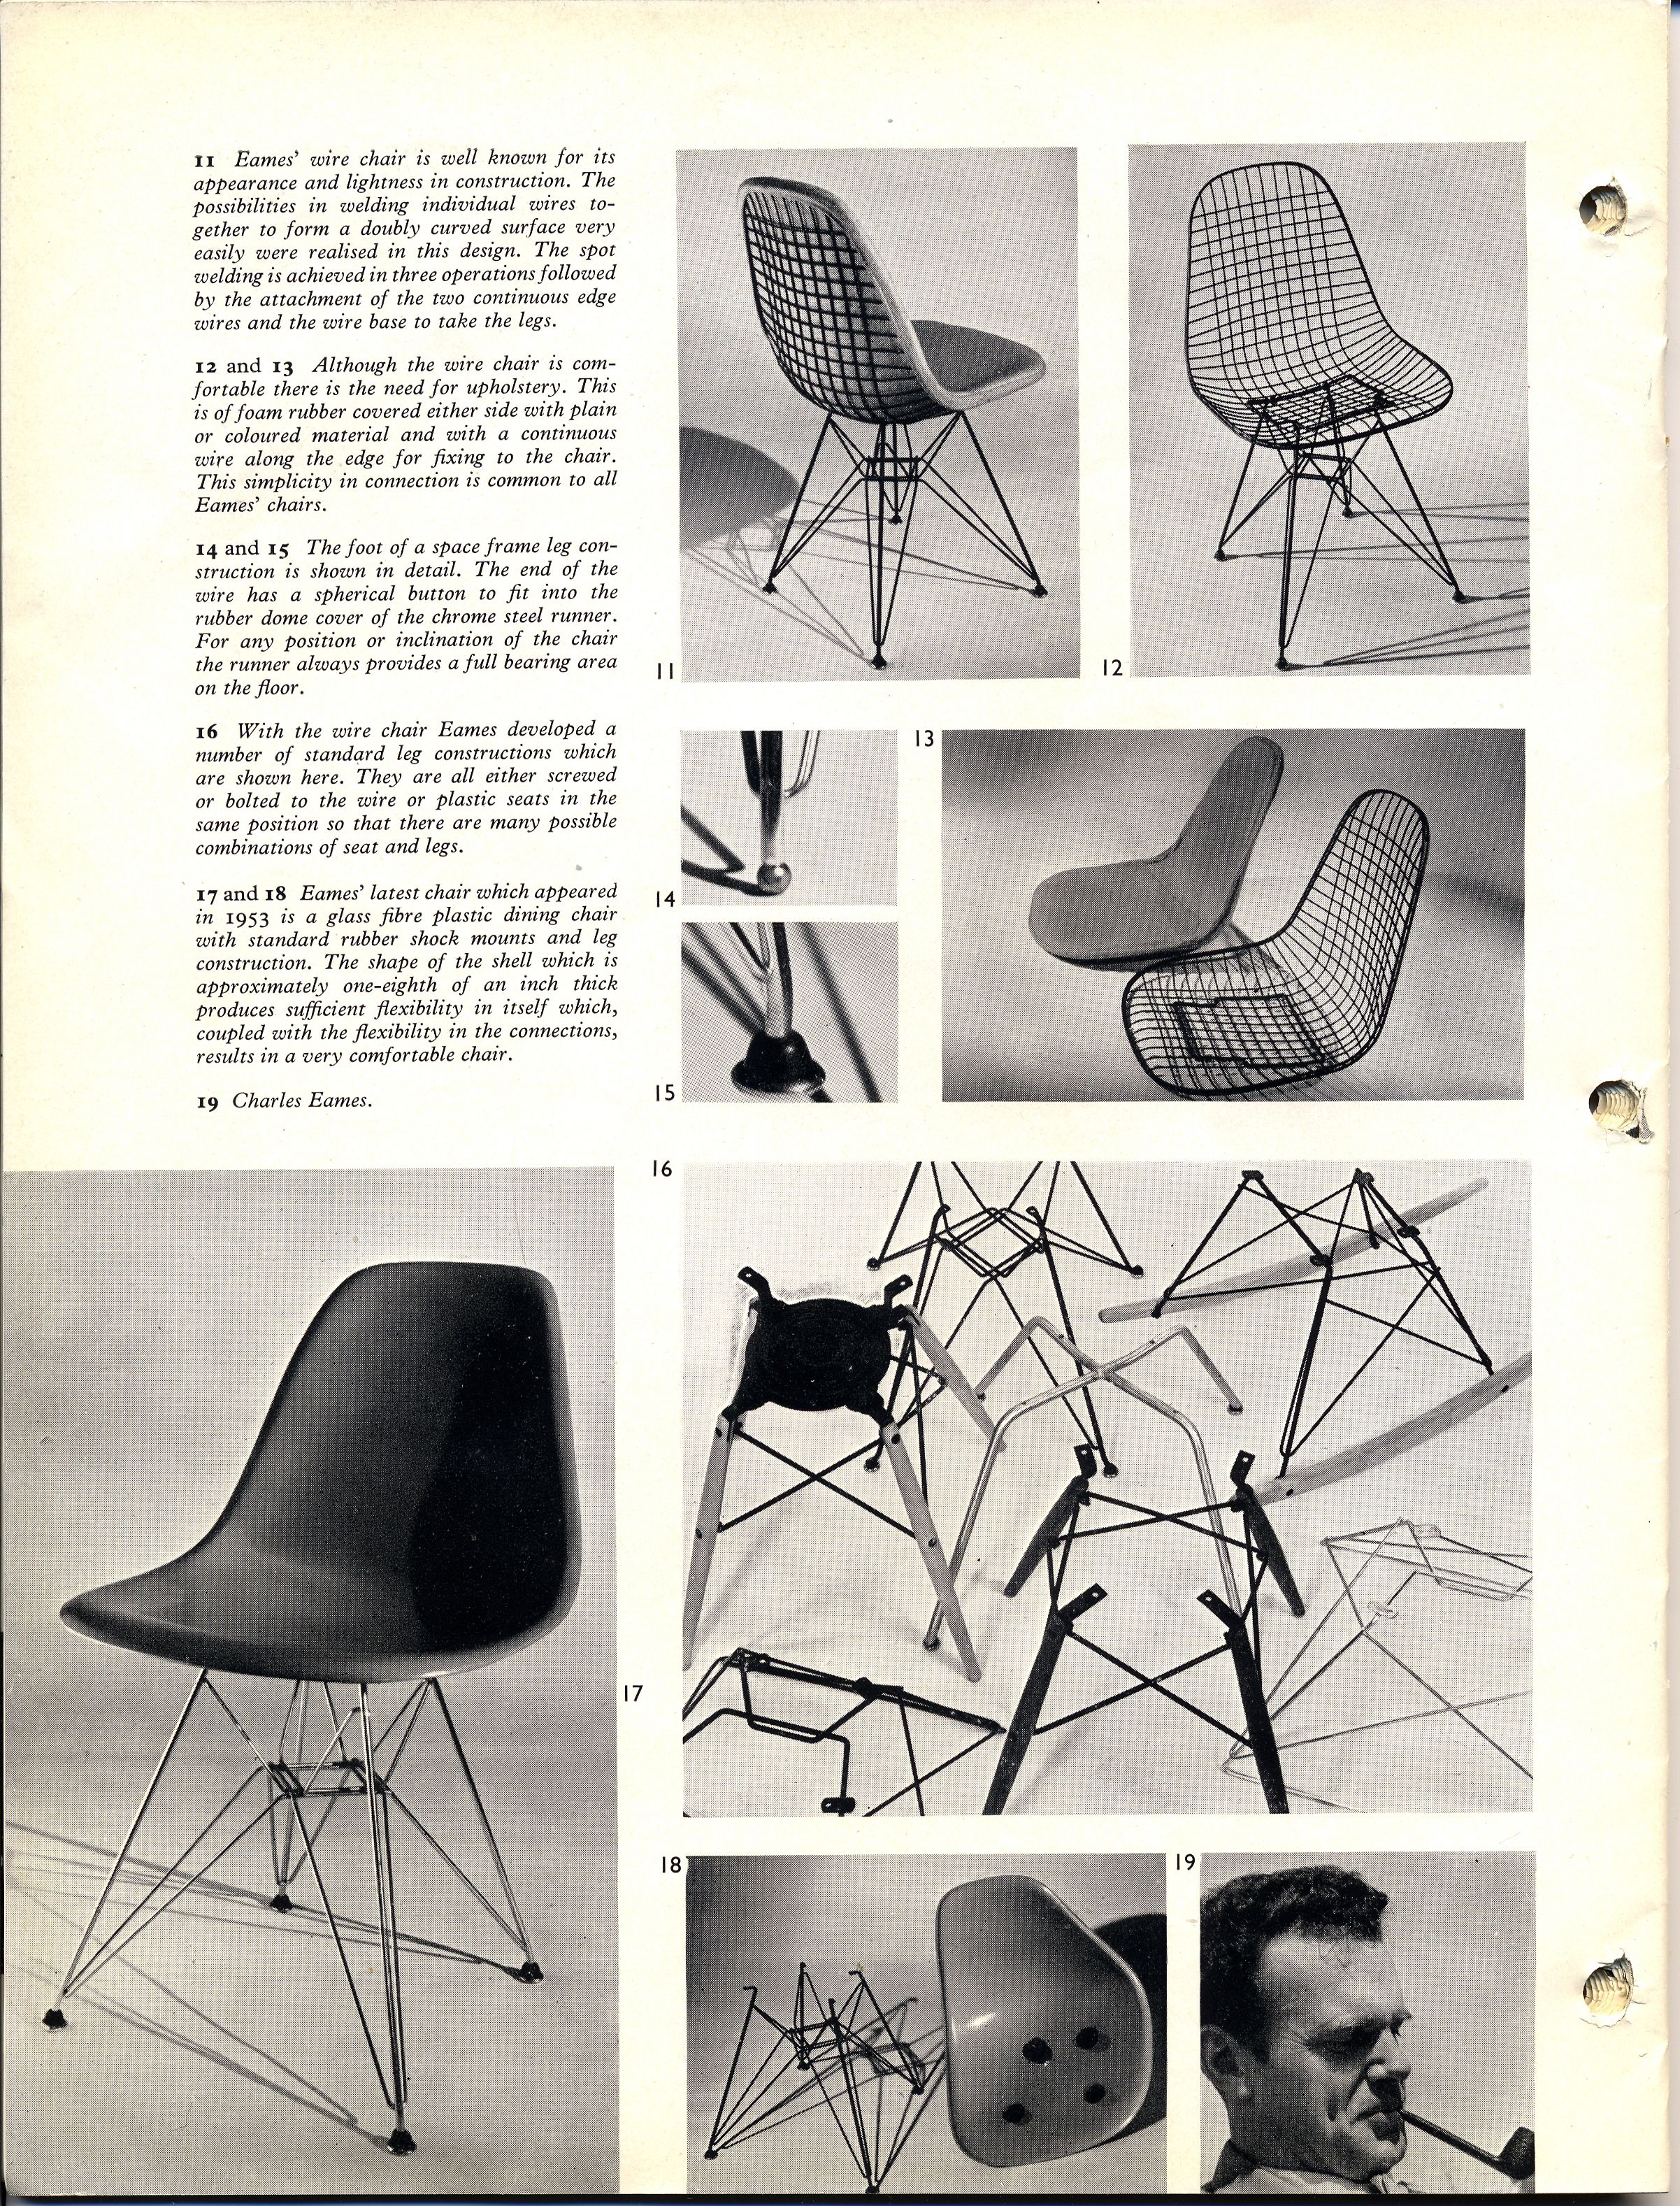 Eames Upholstered Wire Chairs And Eames Fiberglass Chairs Were Celebrated By The British Design Council When They W Eames Fiberglass Chair British Design Eames